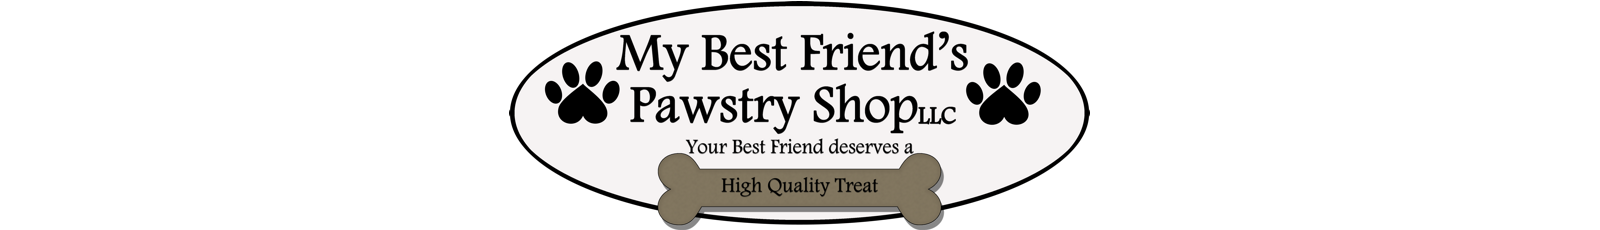 My Best Friend's Pawstry Shop Logo